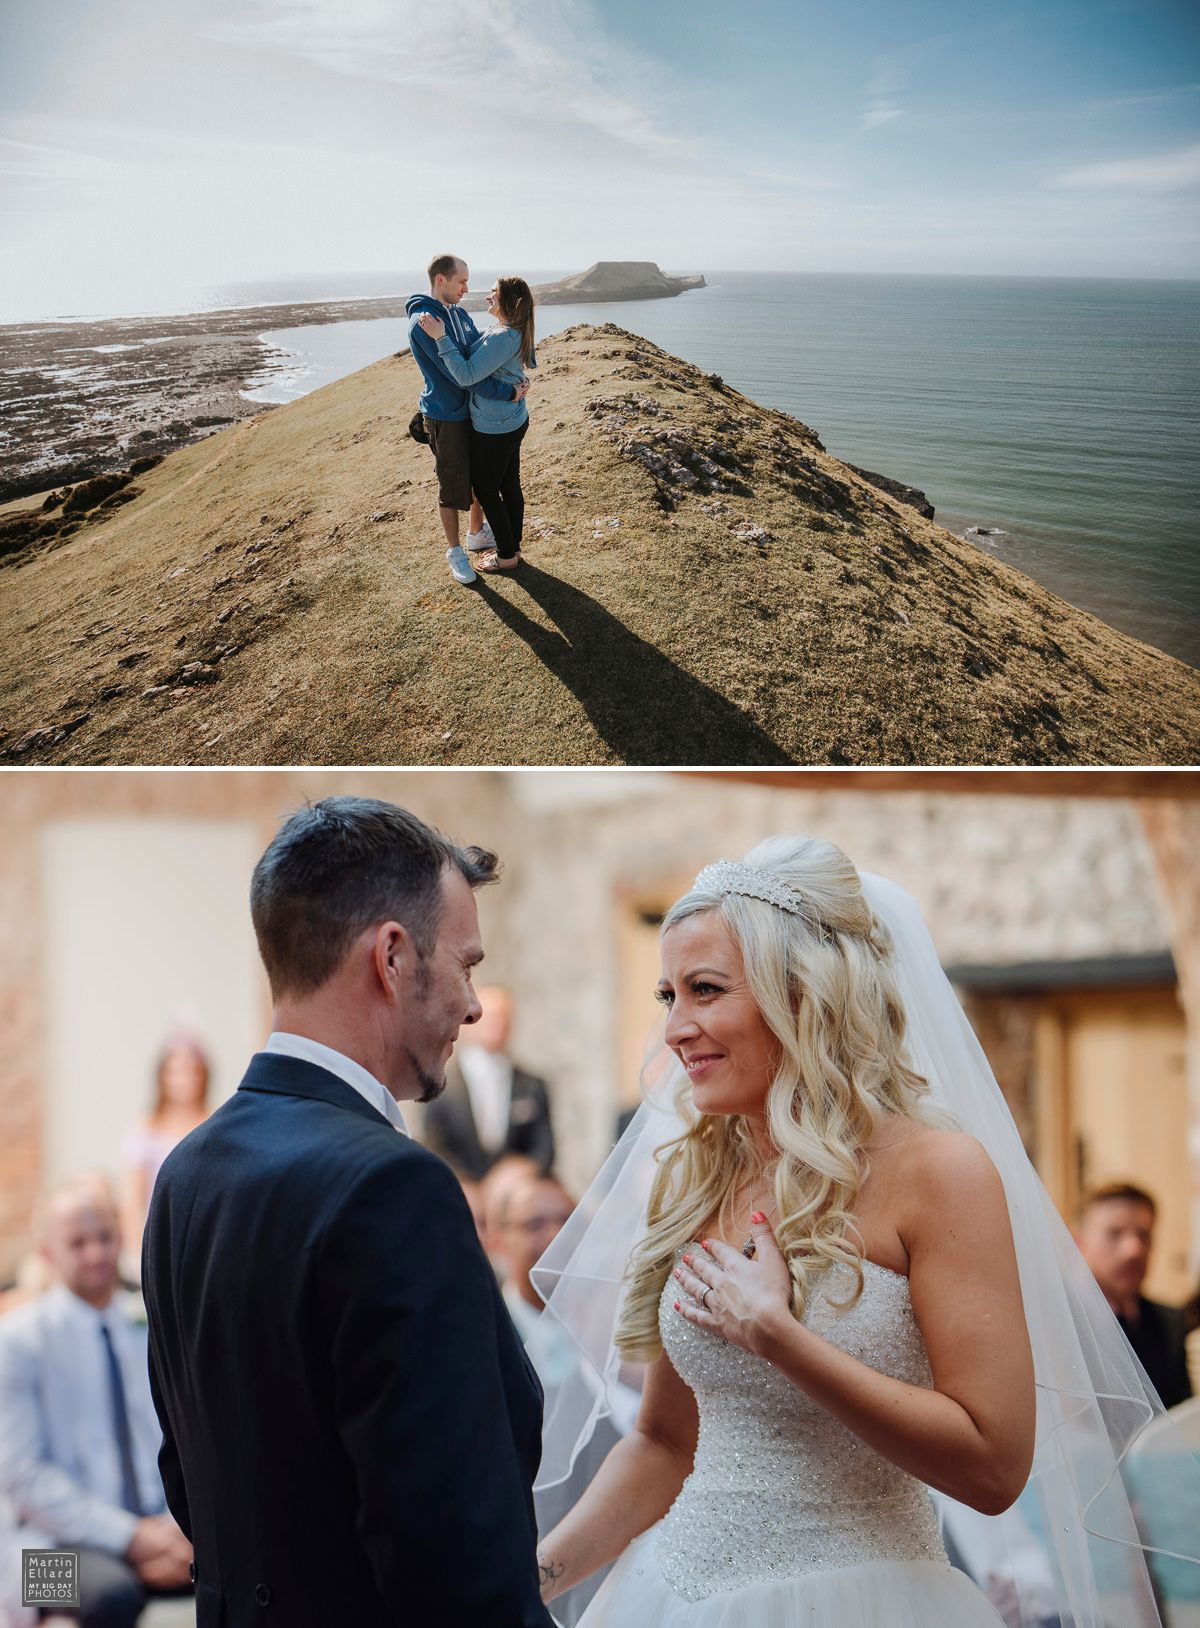 Swansea wedding photographer review 2016